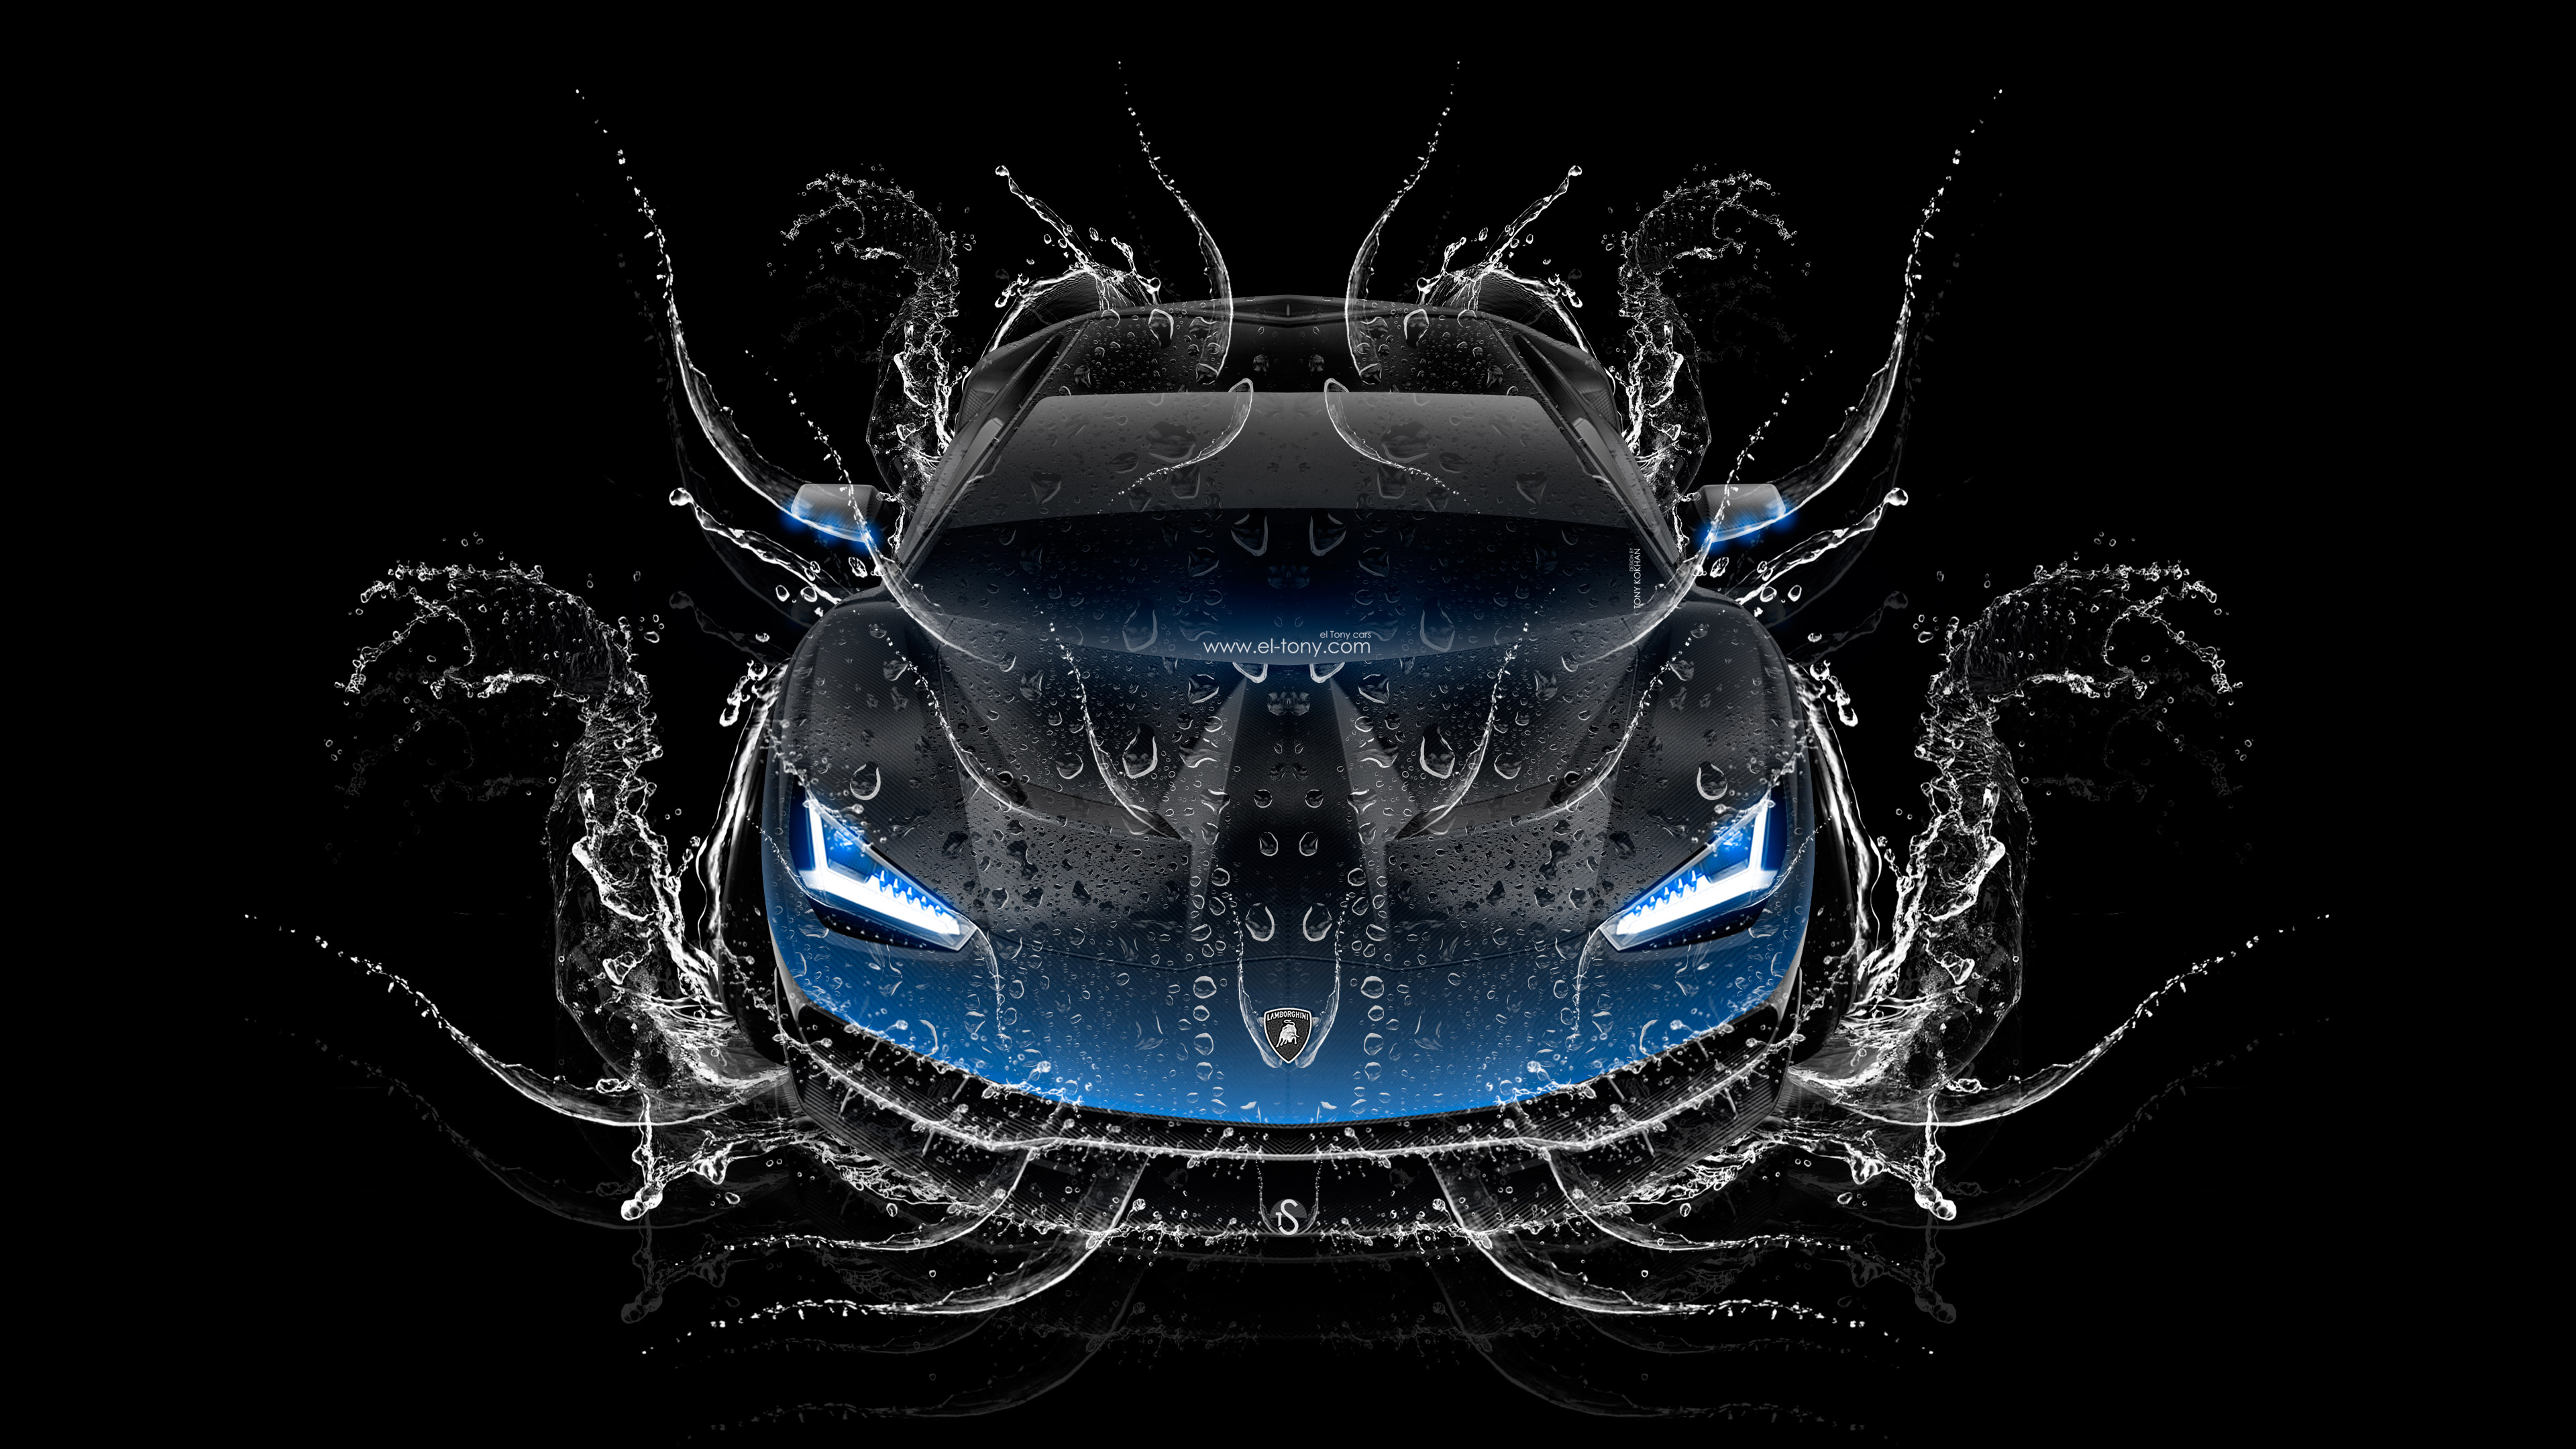 Delicieux Lamborghini Centenario FrontUp Super Water Car 2016 Wallpapers 4K